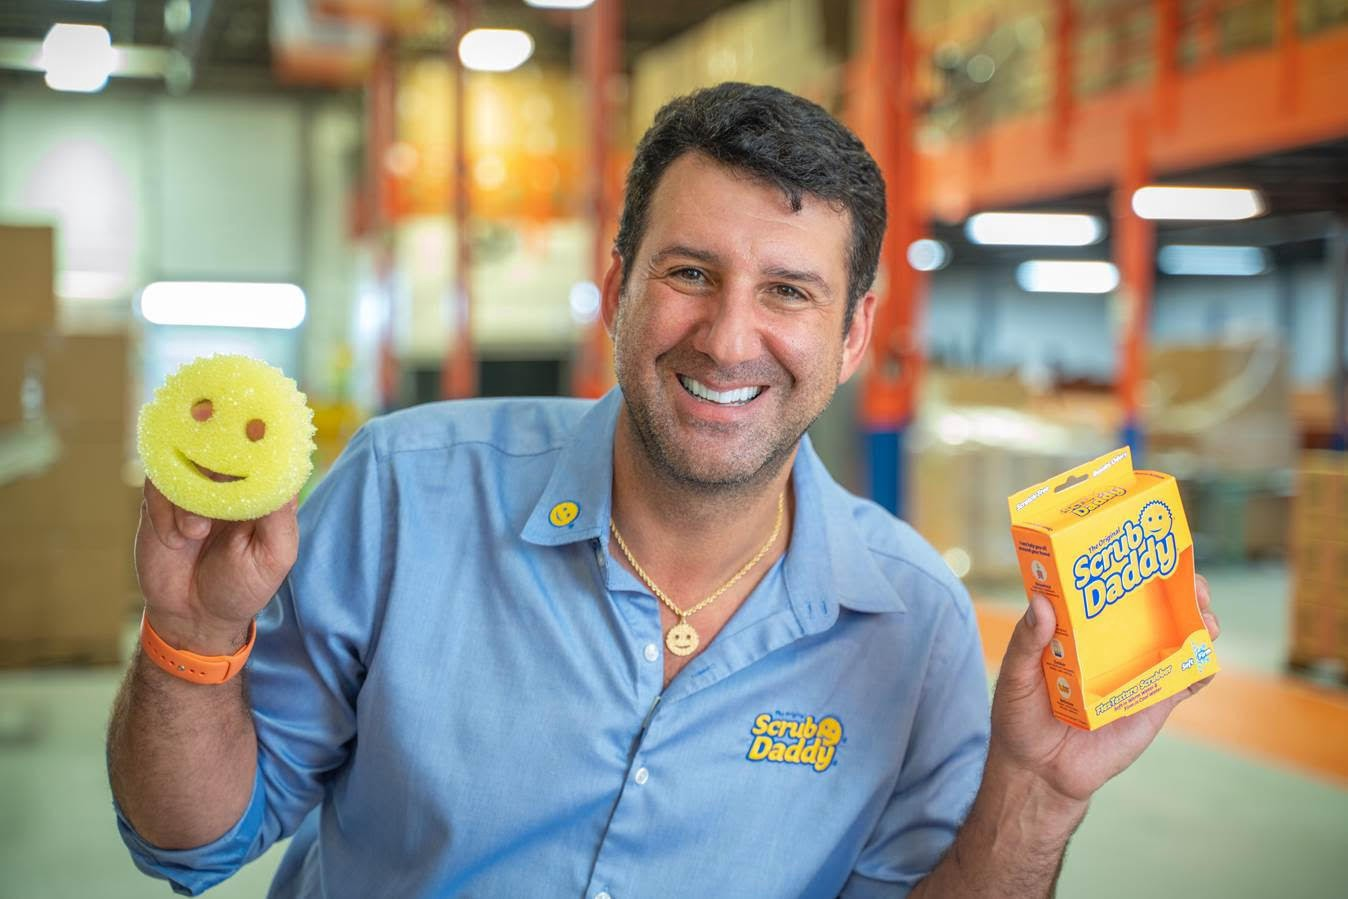 Scrub Daddy CEO Aaron Krause shares his playbook during a crisis: 'You have to lead by example'